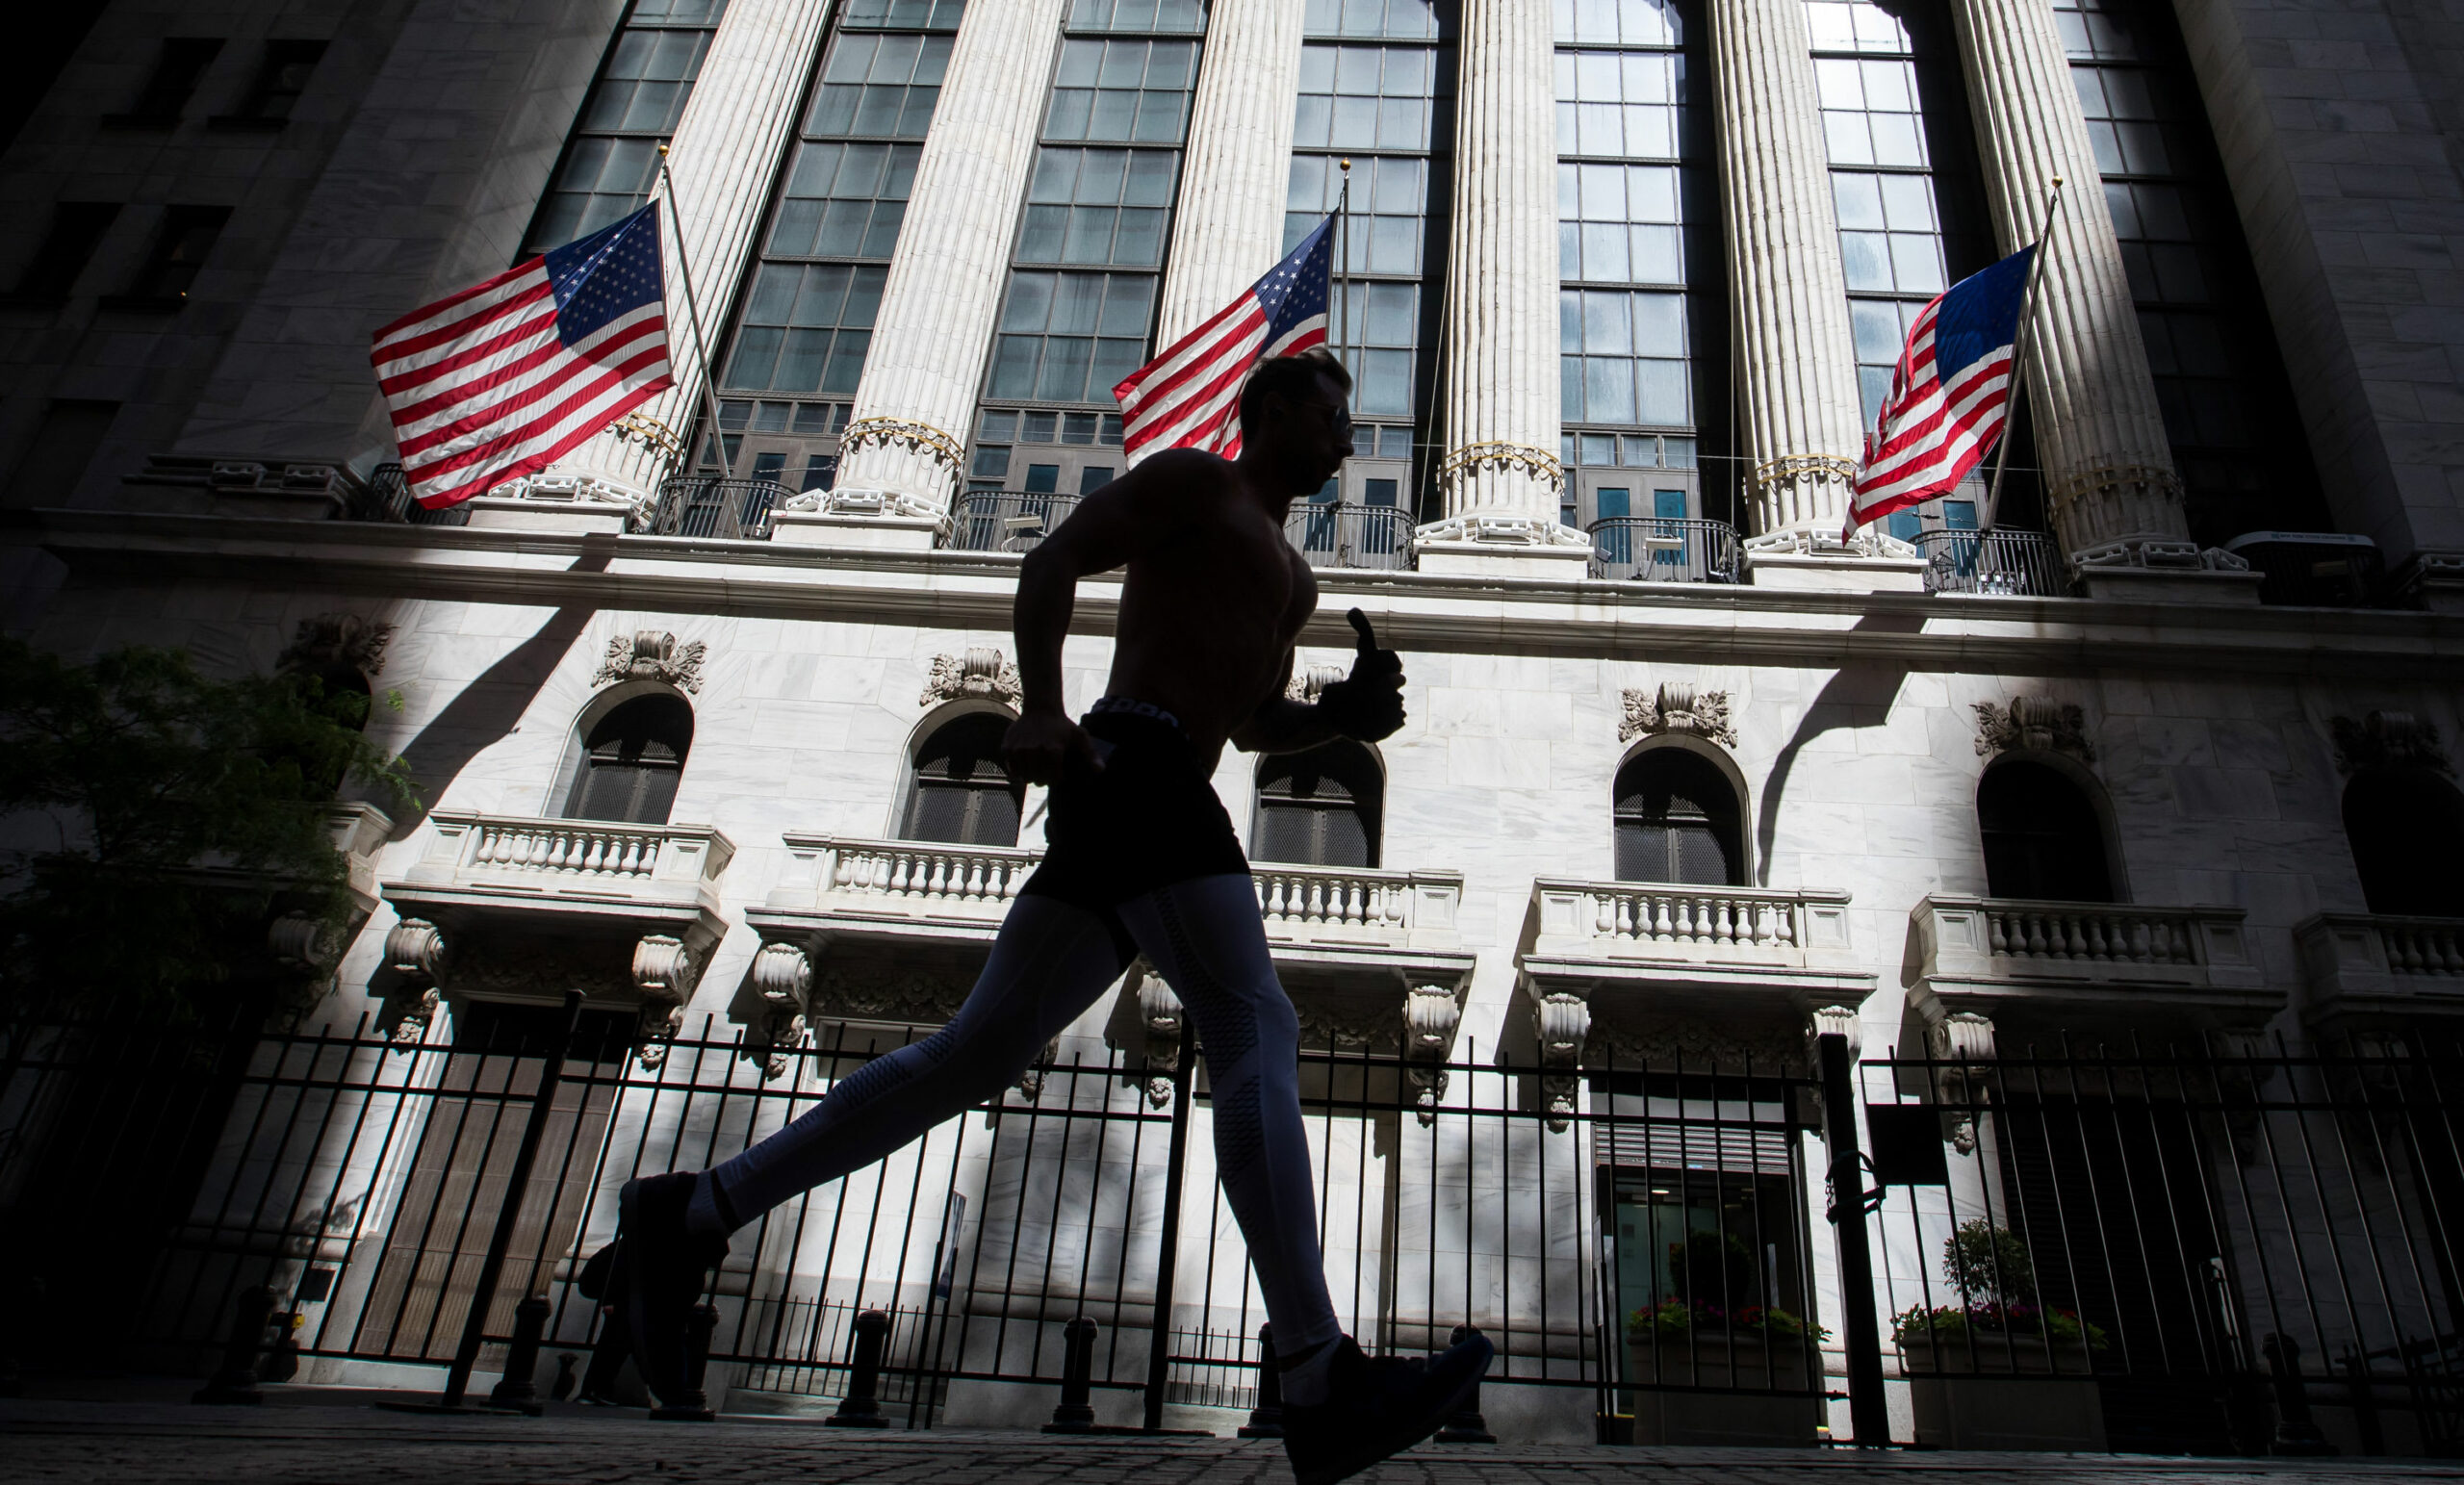 S&P 500 Index opens little changed after mixed United States data